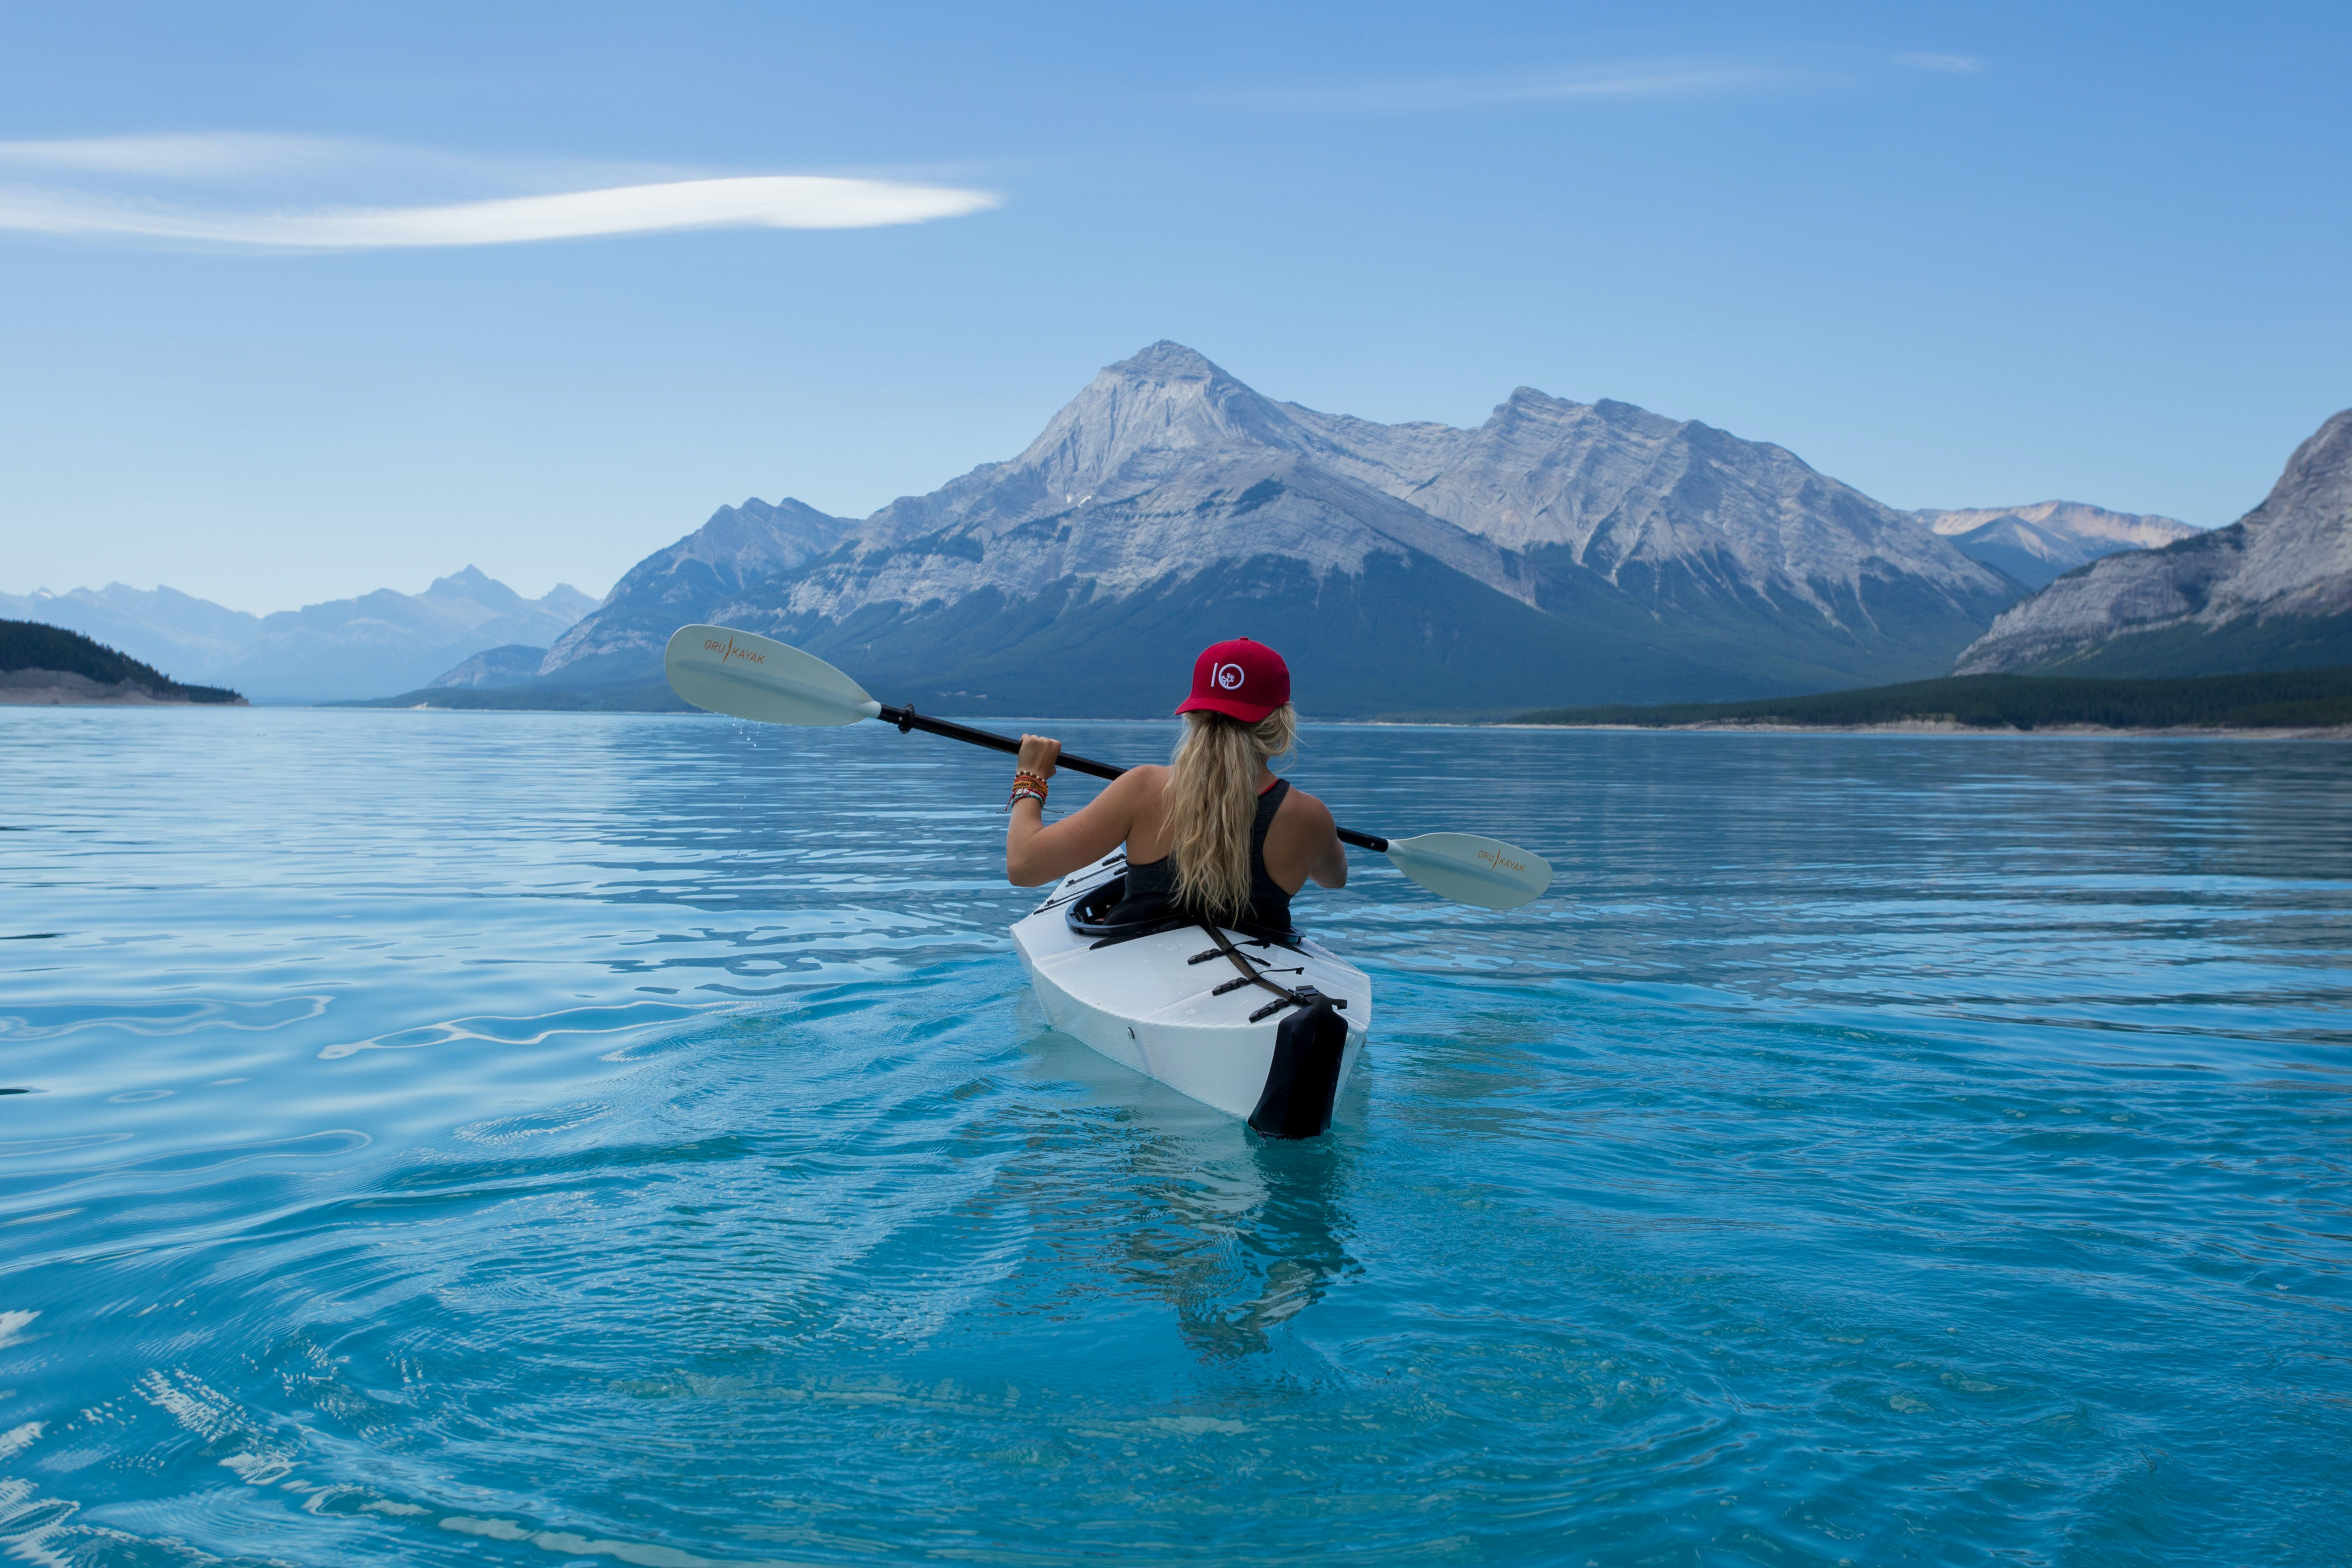 woman wearing red hat riding on white kayak facing mountain alps